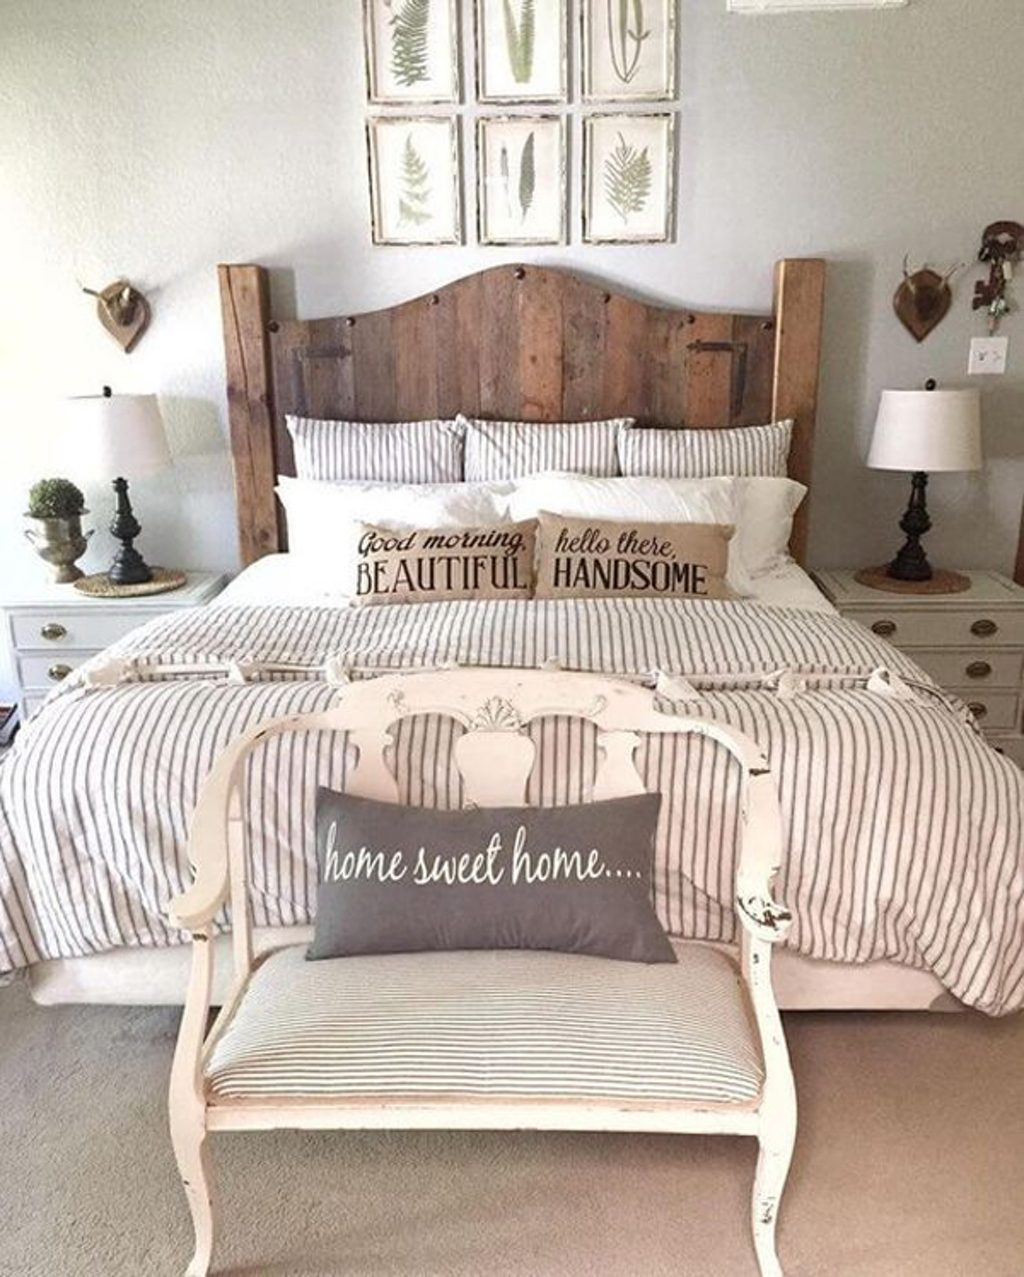 Bedroom Rustic Farmhouse Bedroom Decor 25 Cozy And Stylish